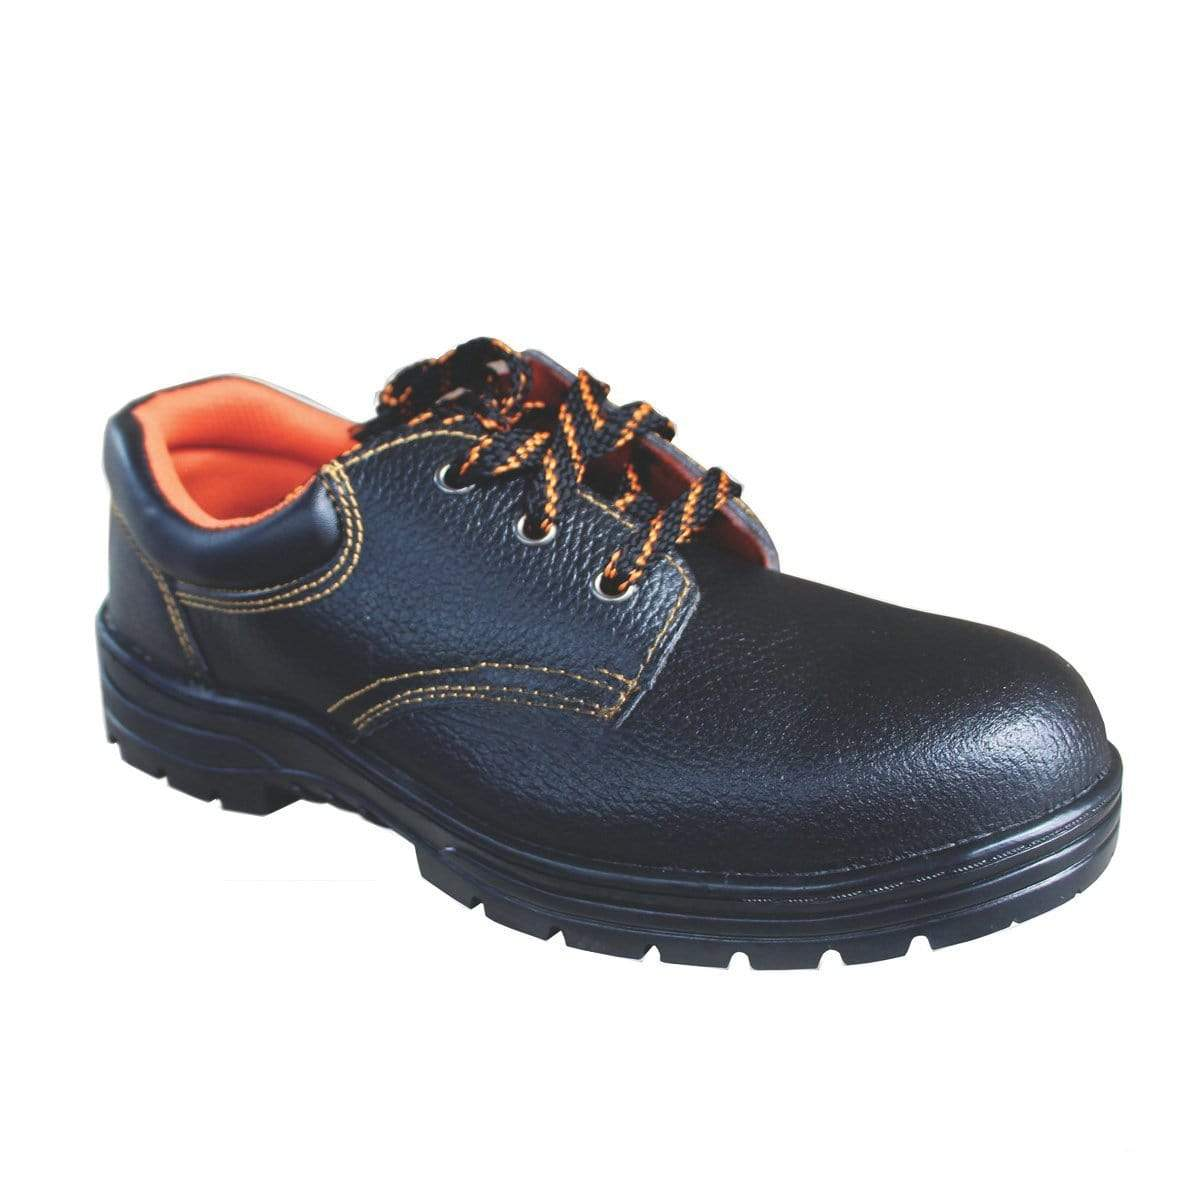 ANEKA Worker Safety Shoes Safety Boots Steel Toe Cap Kasut UK13 1000#